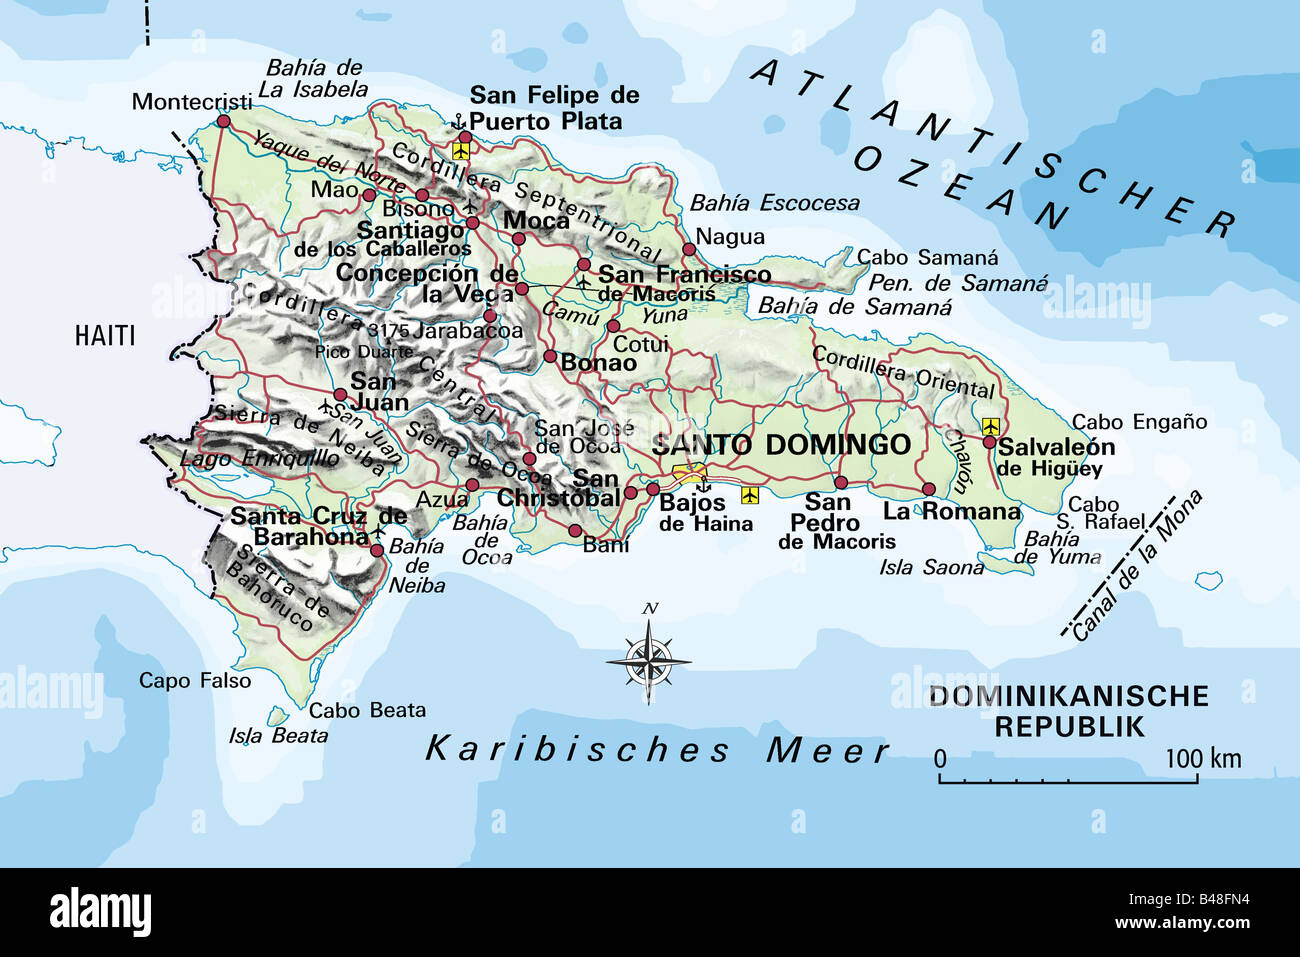 Cartography Maps America Dominican Republic Circa - Map of central america and the caribbean islands